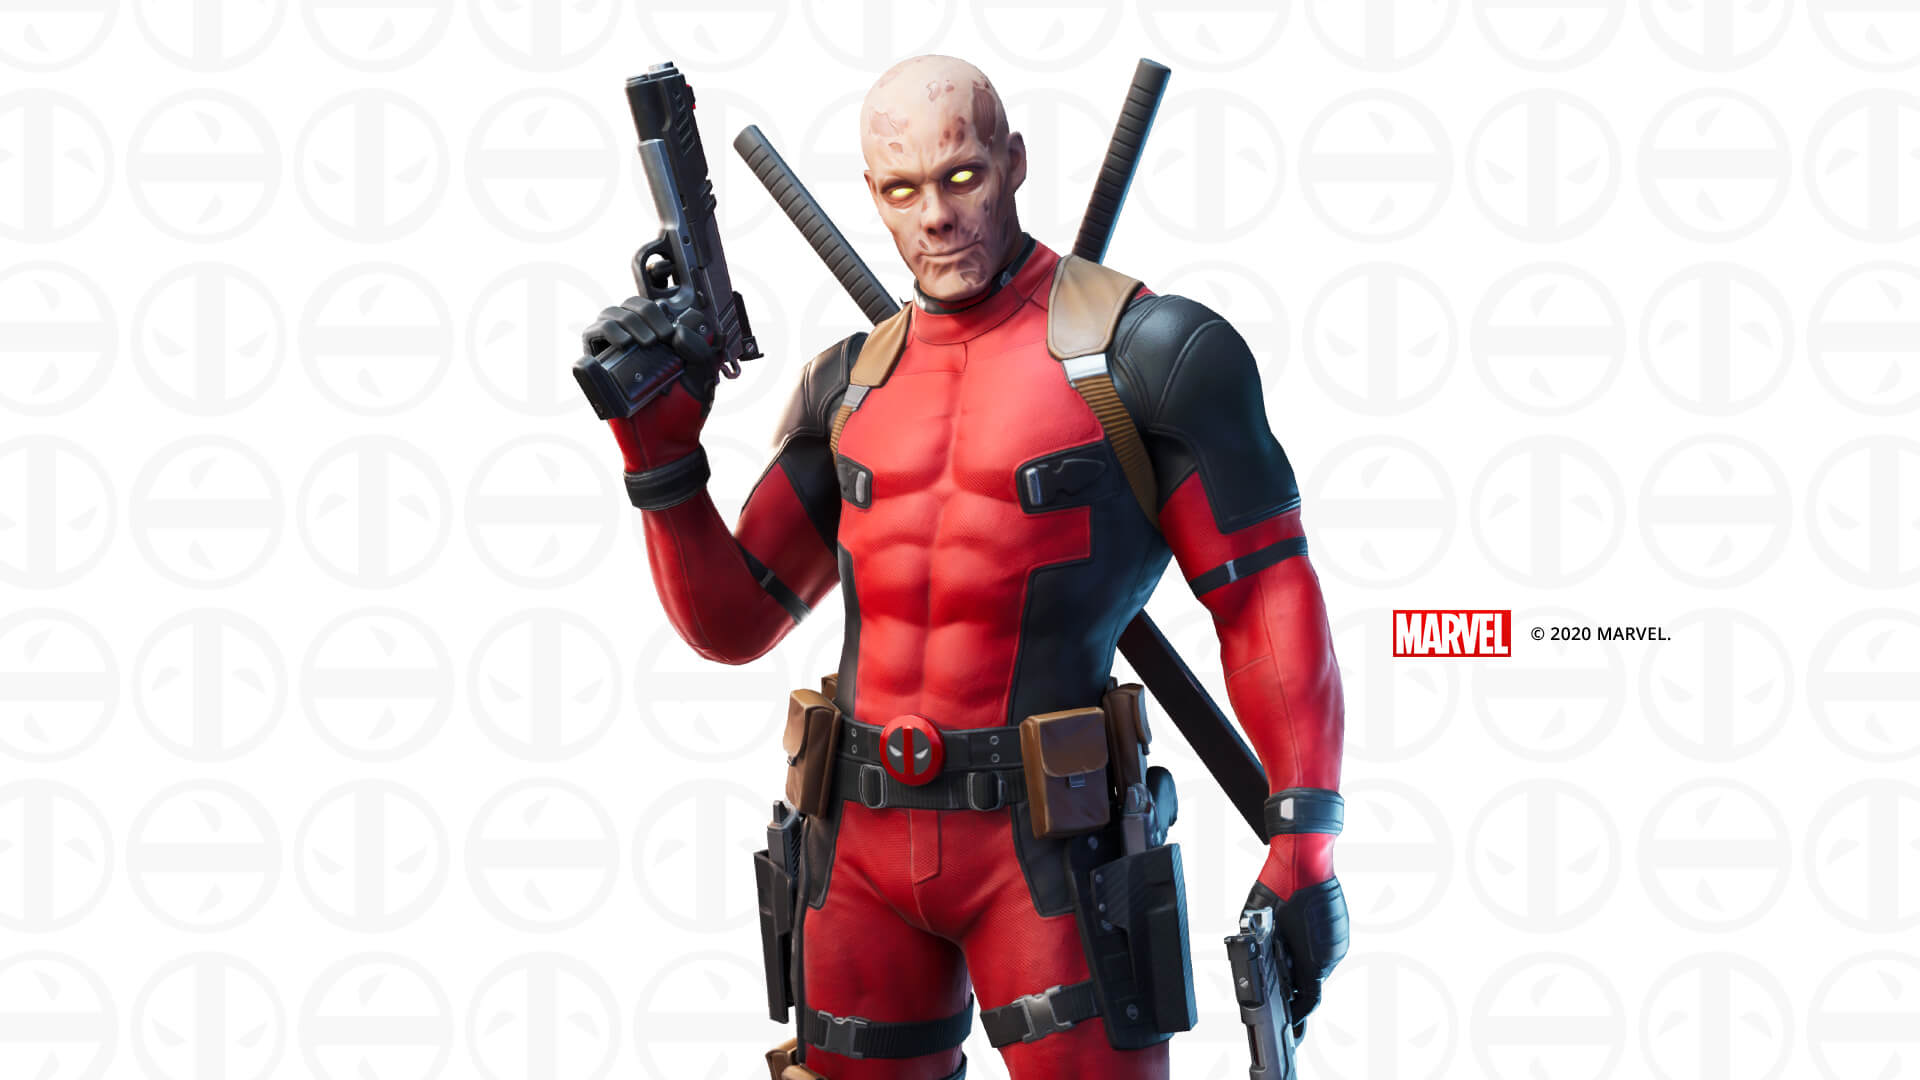 Fortnite Deadpool Unmasked Outfit